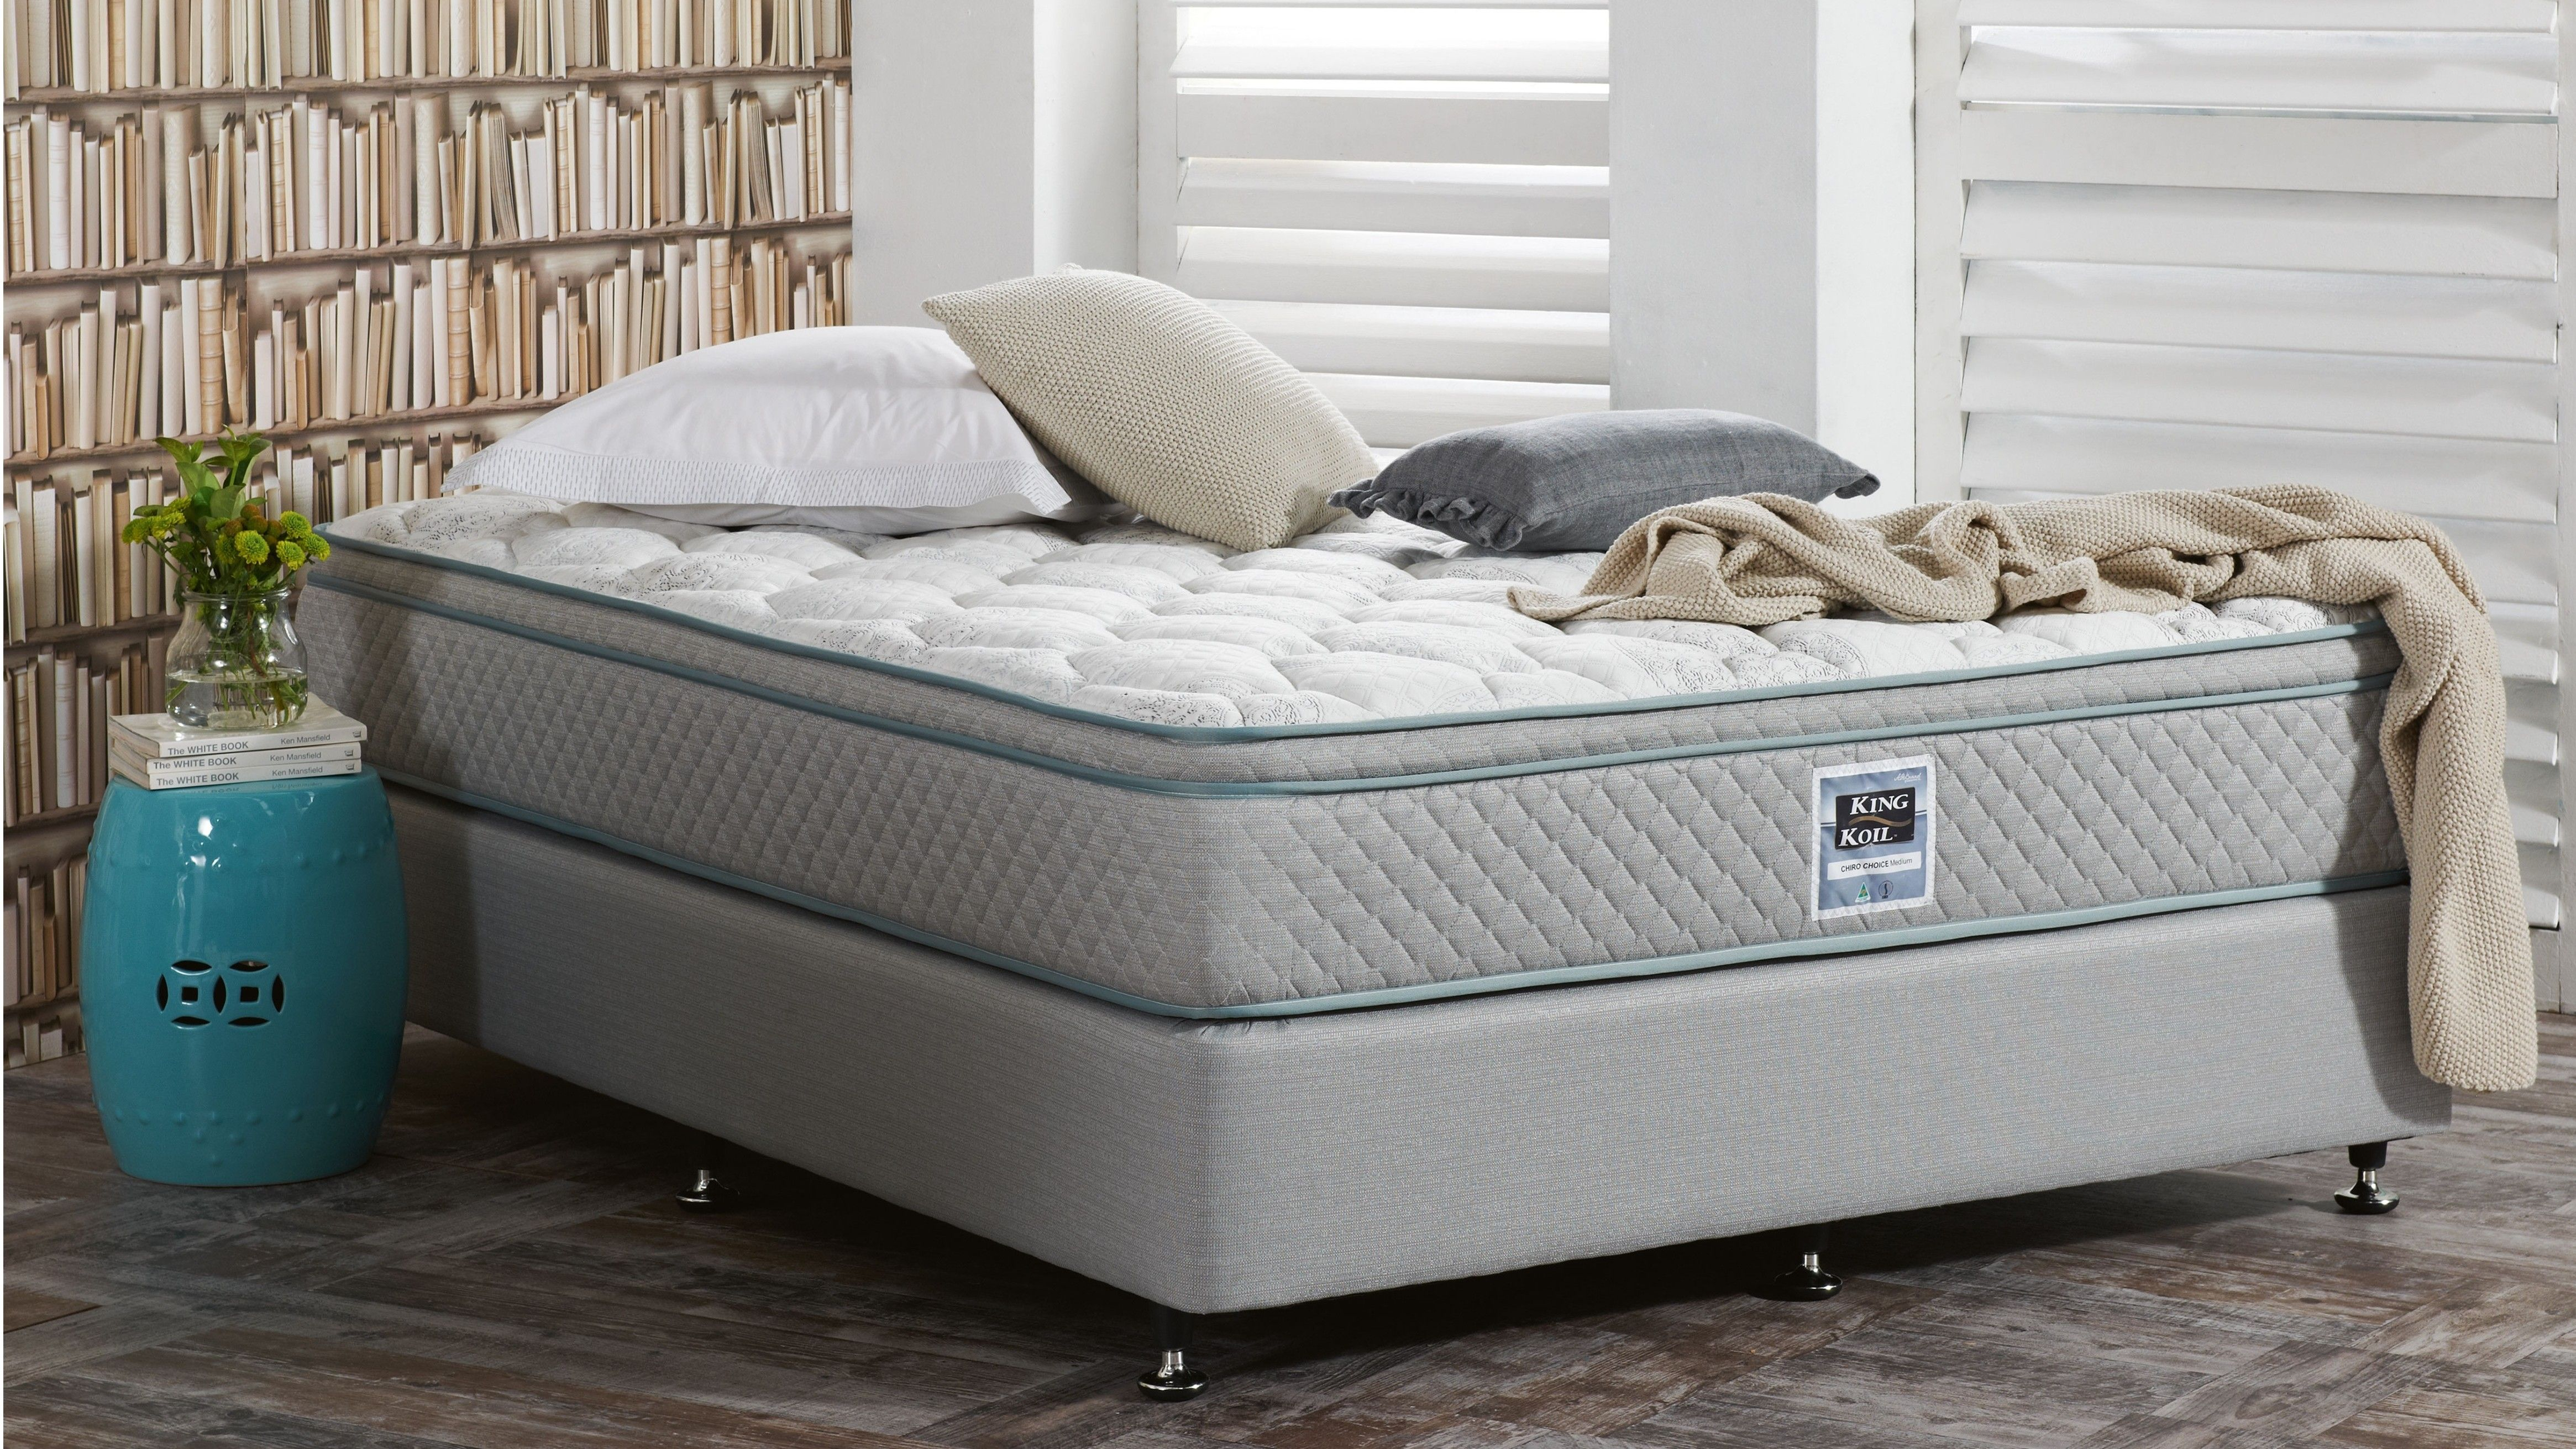 featuring contour coil support to promote correct sleep posture and